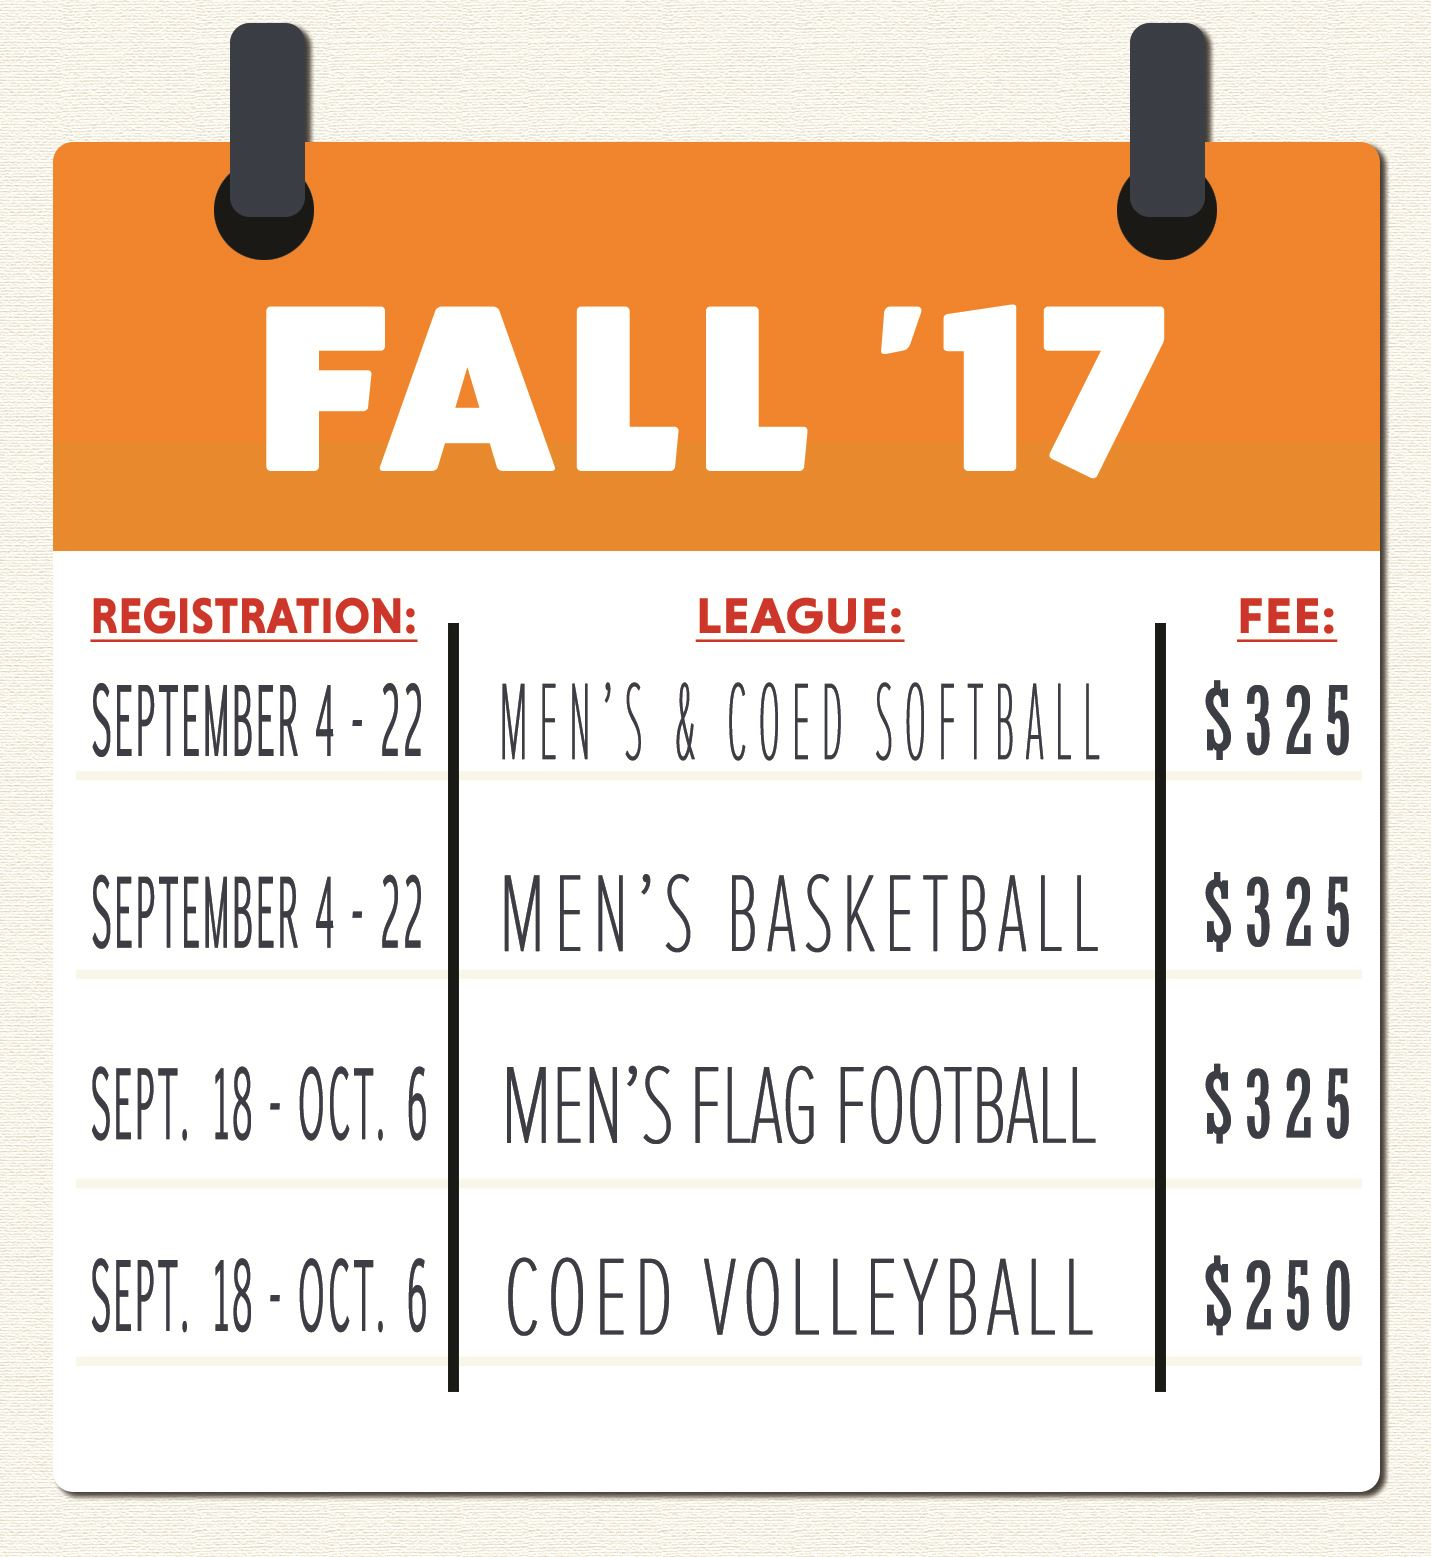 Brownsville Sports Park Fall  2017 Registration Dates